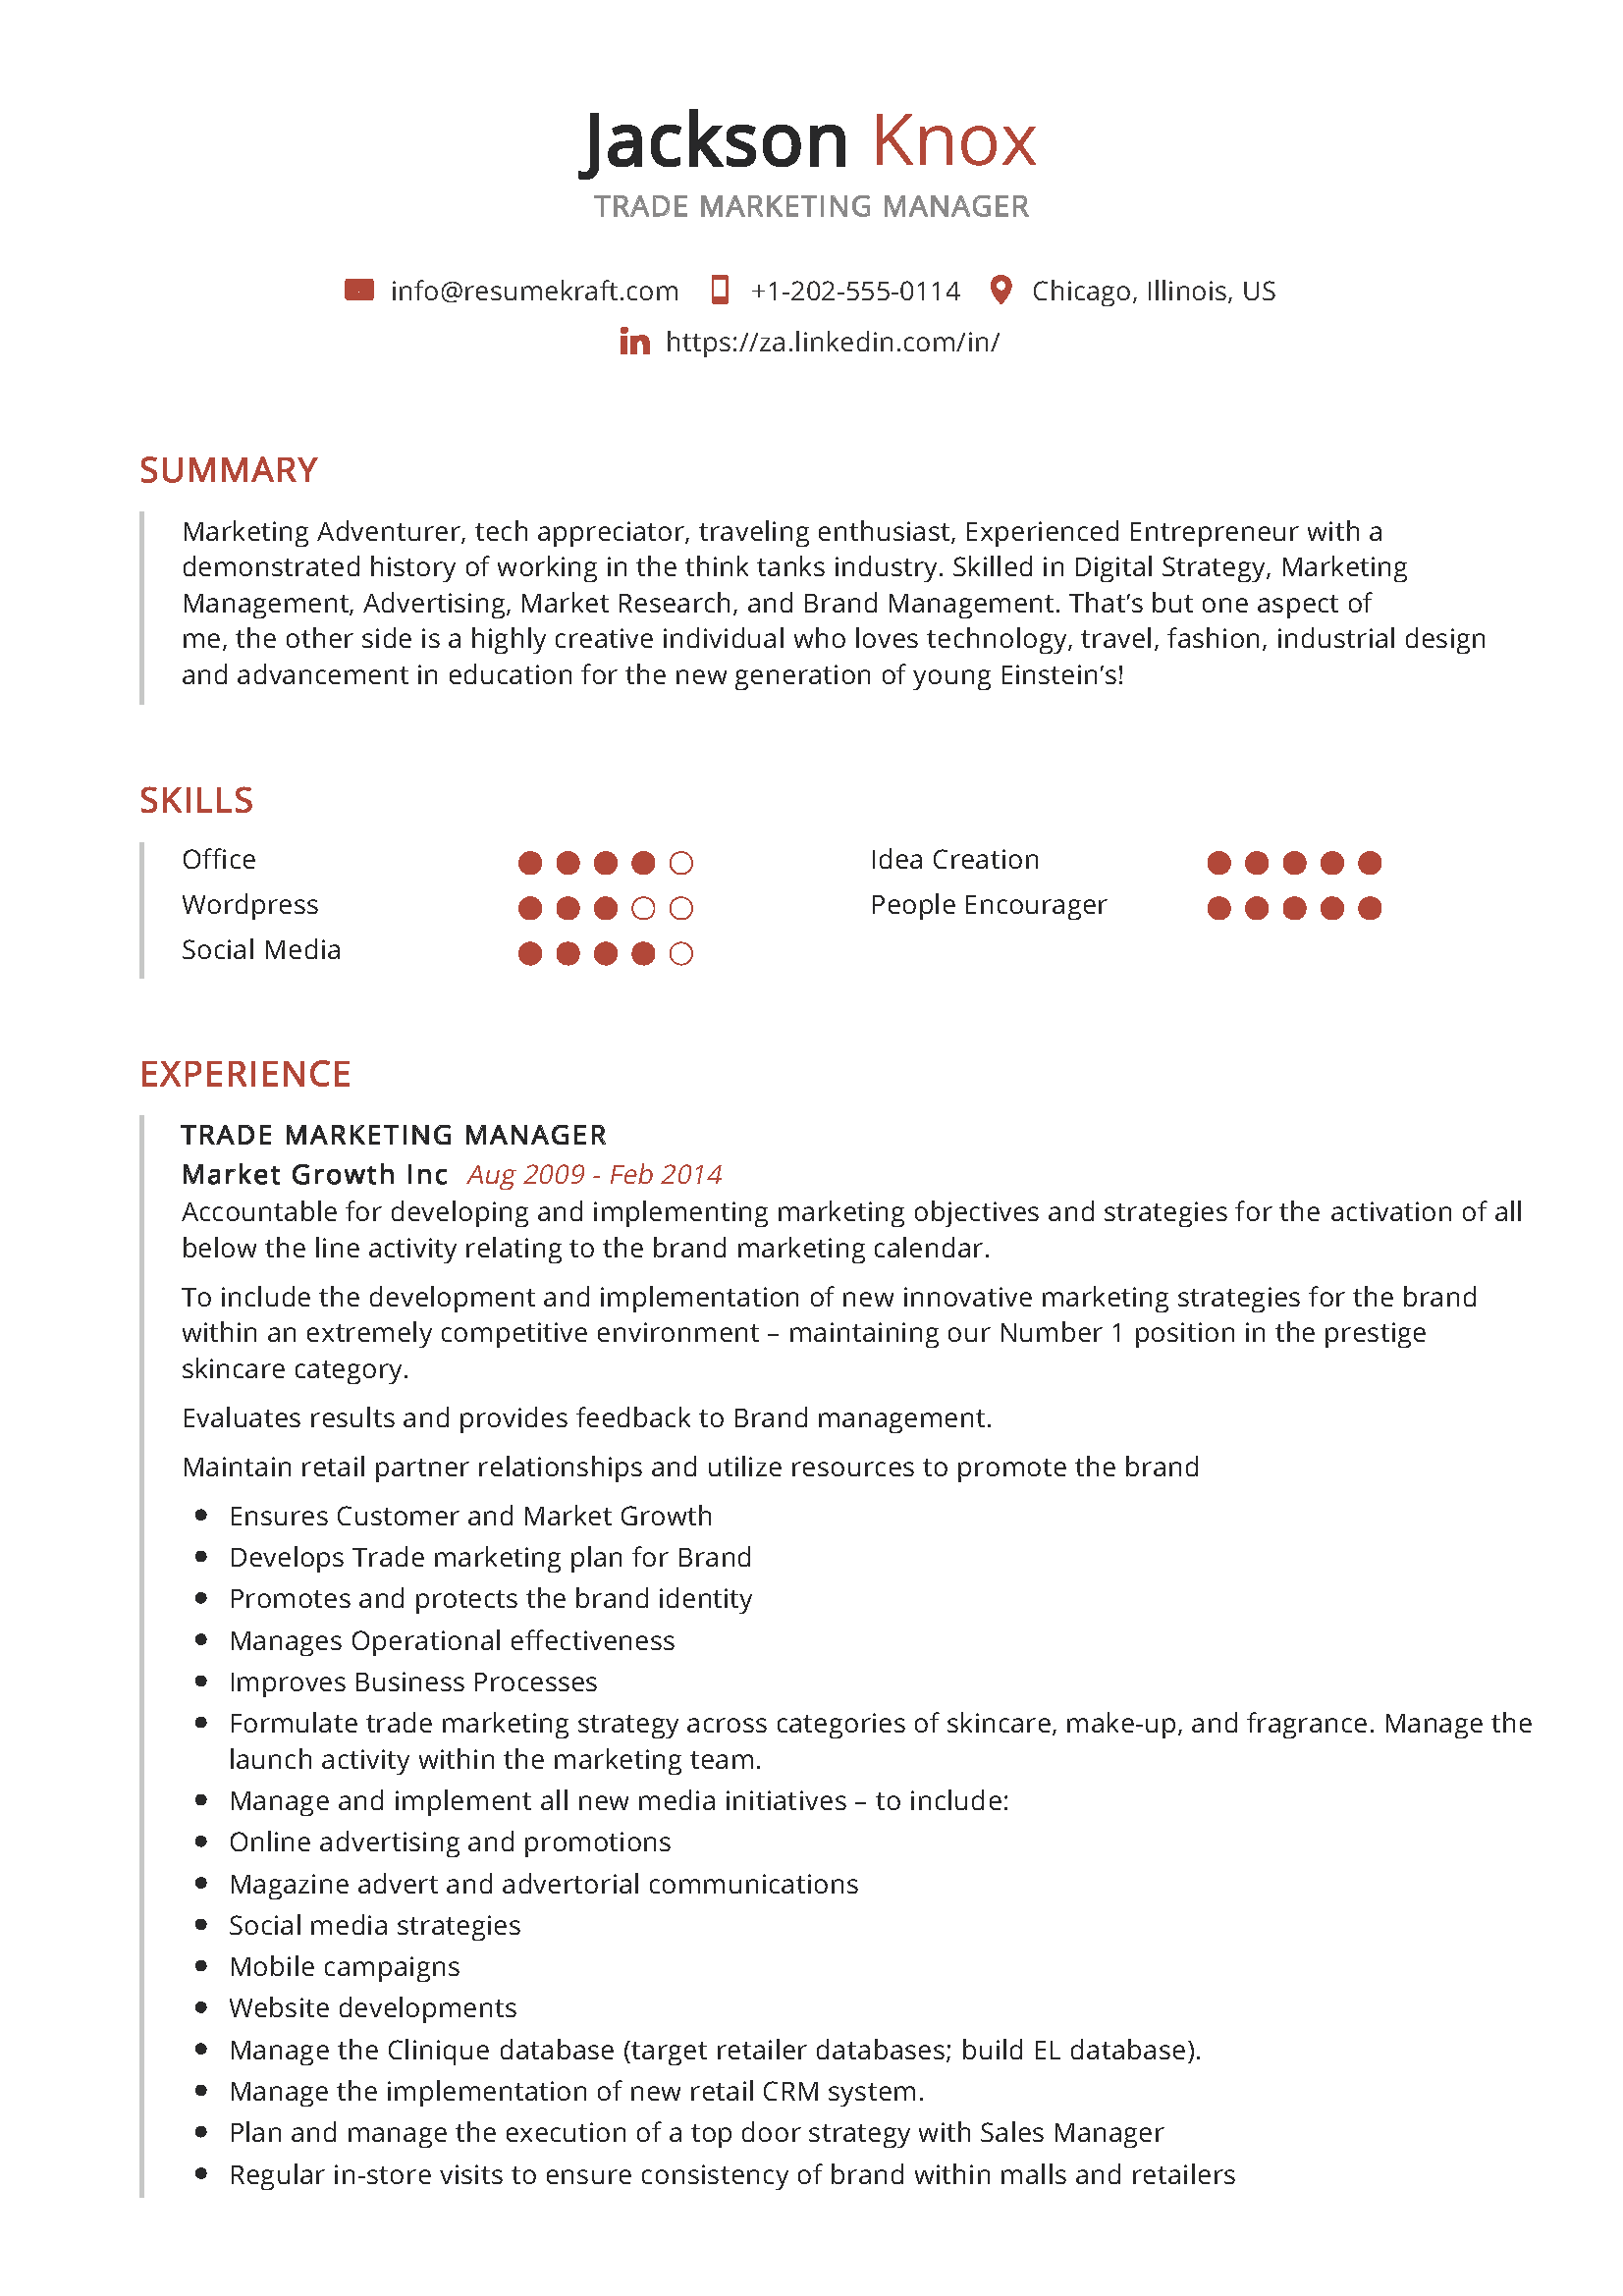 Trade Marketing Manager Sample Resume in 2020 Manager